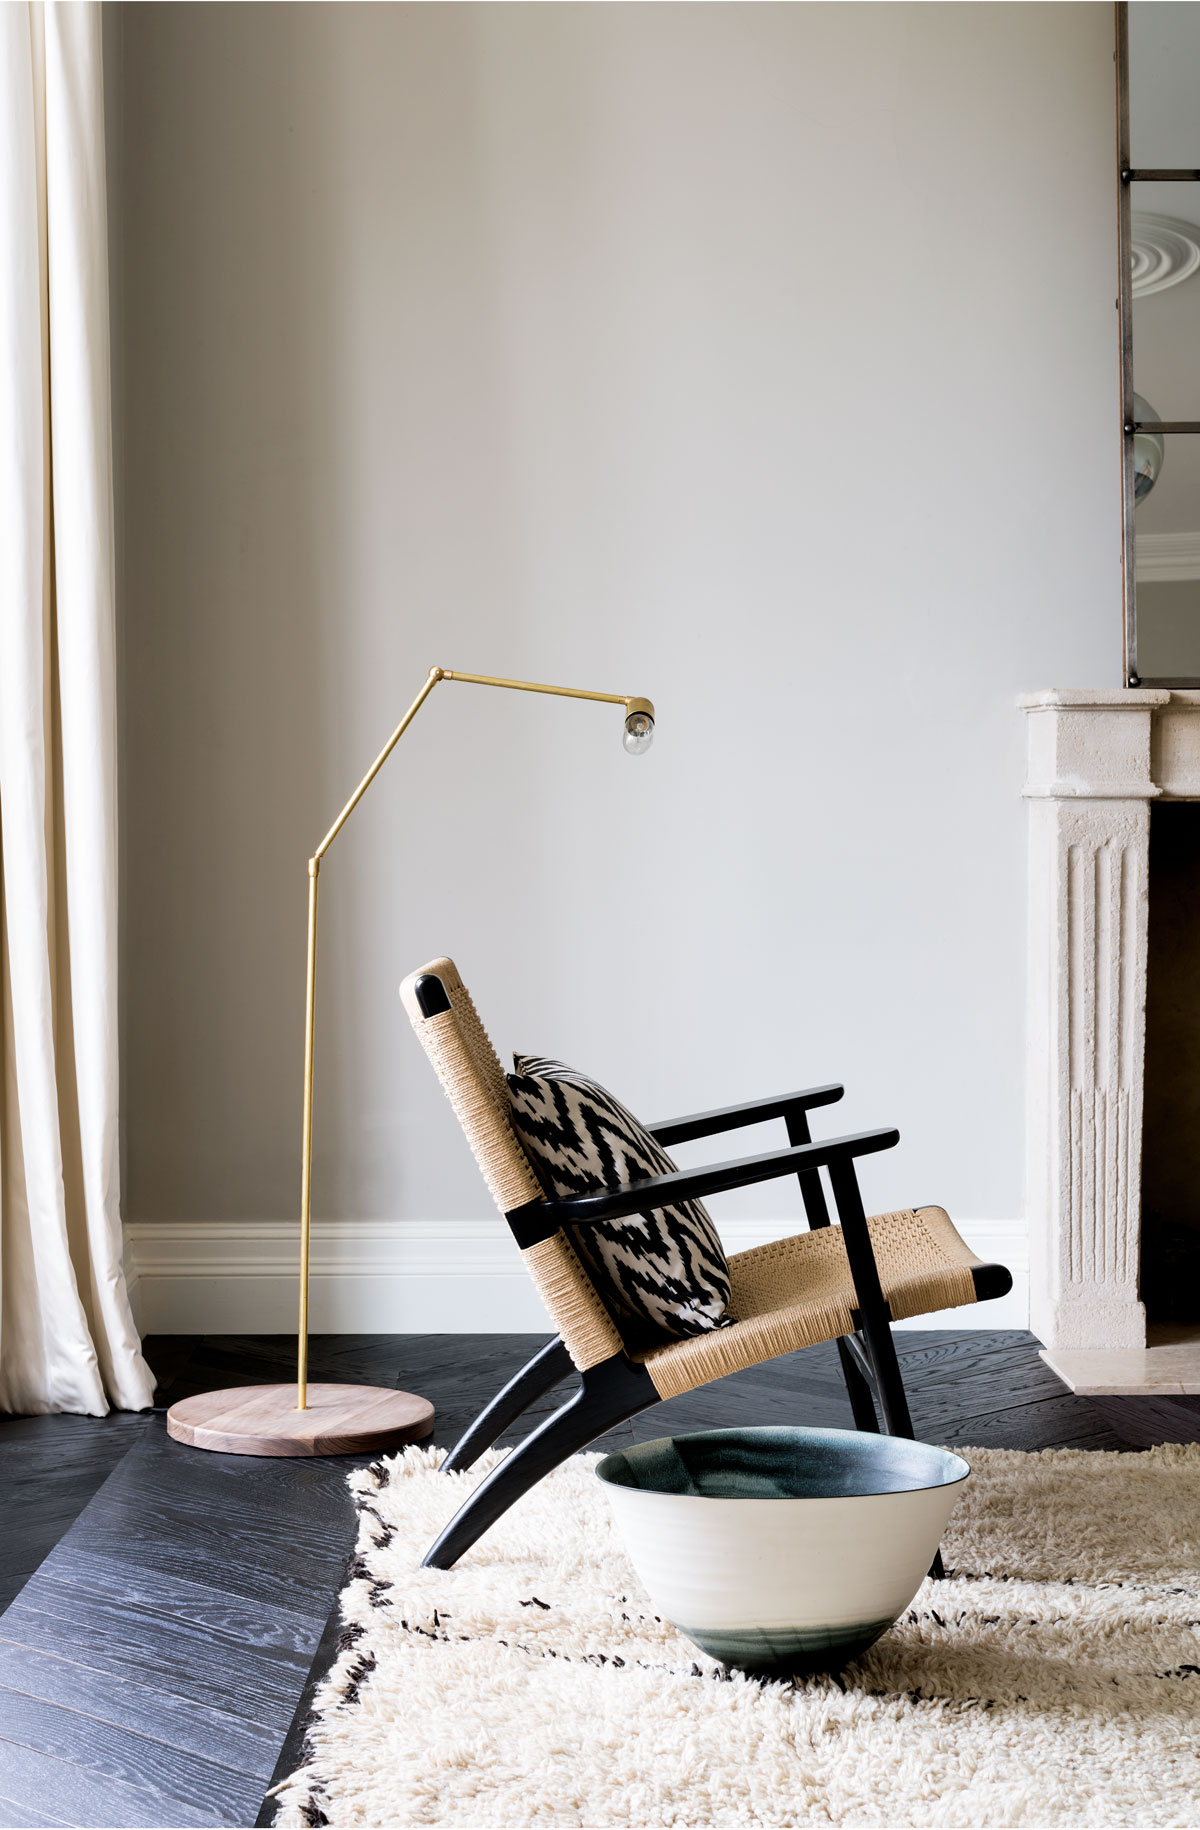 House_of_Grey_Paul_Raeside_woven_chair_styling.jpg